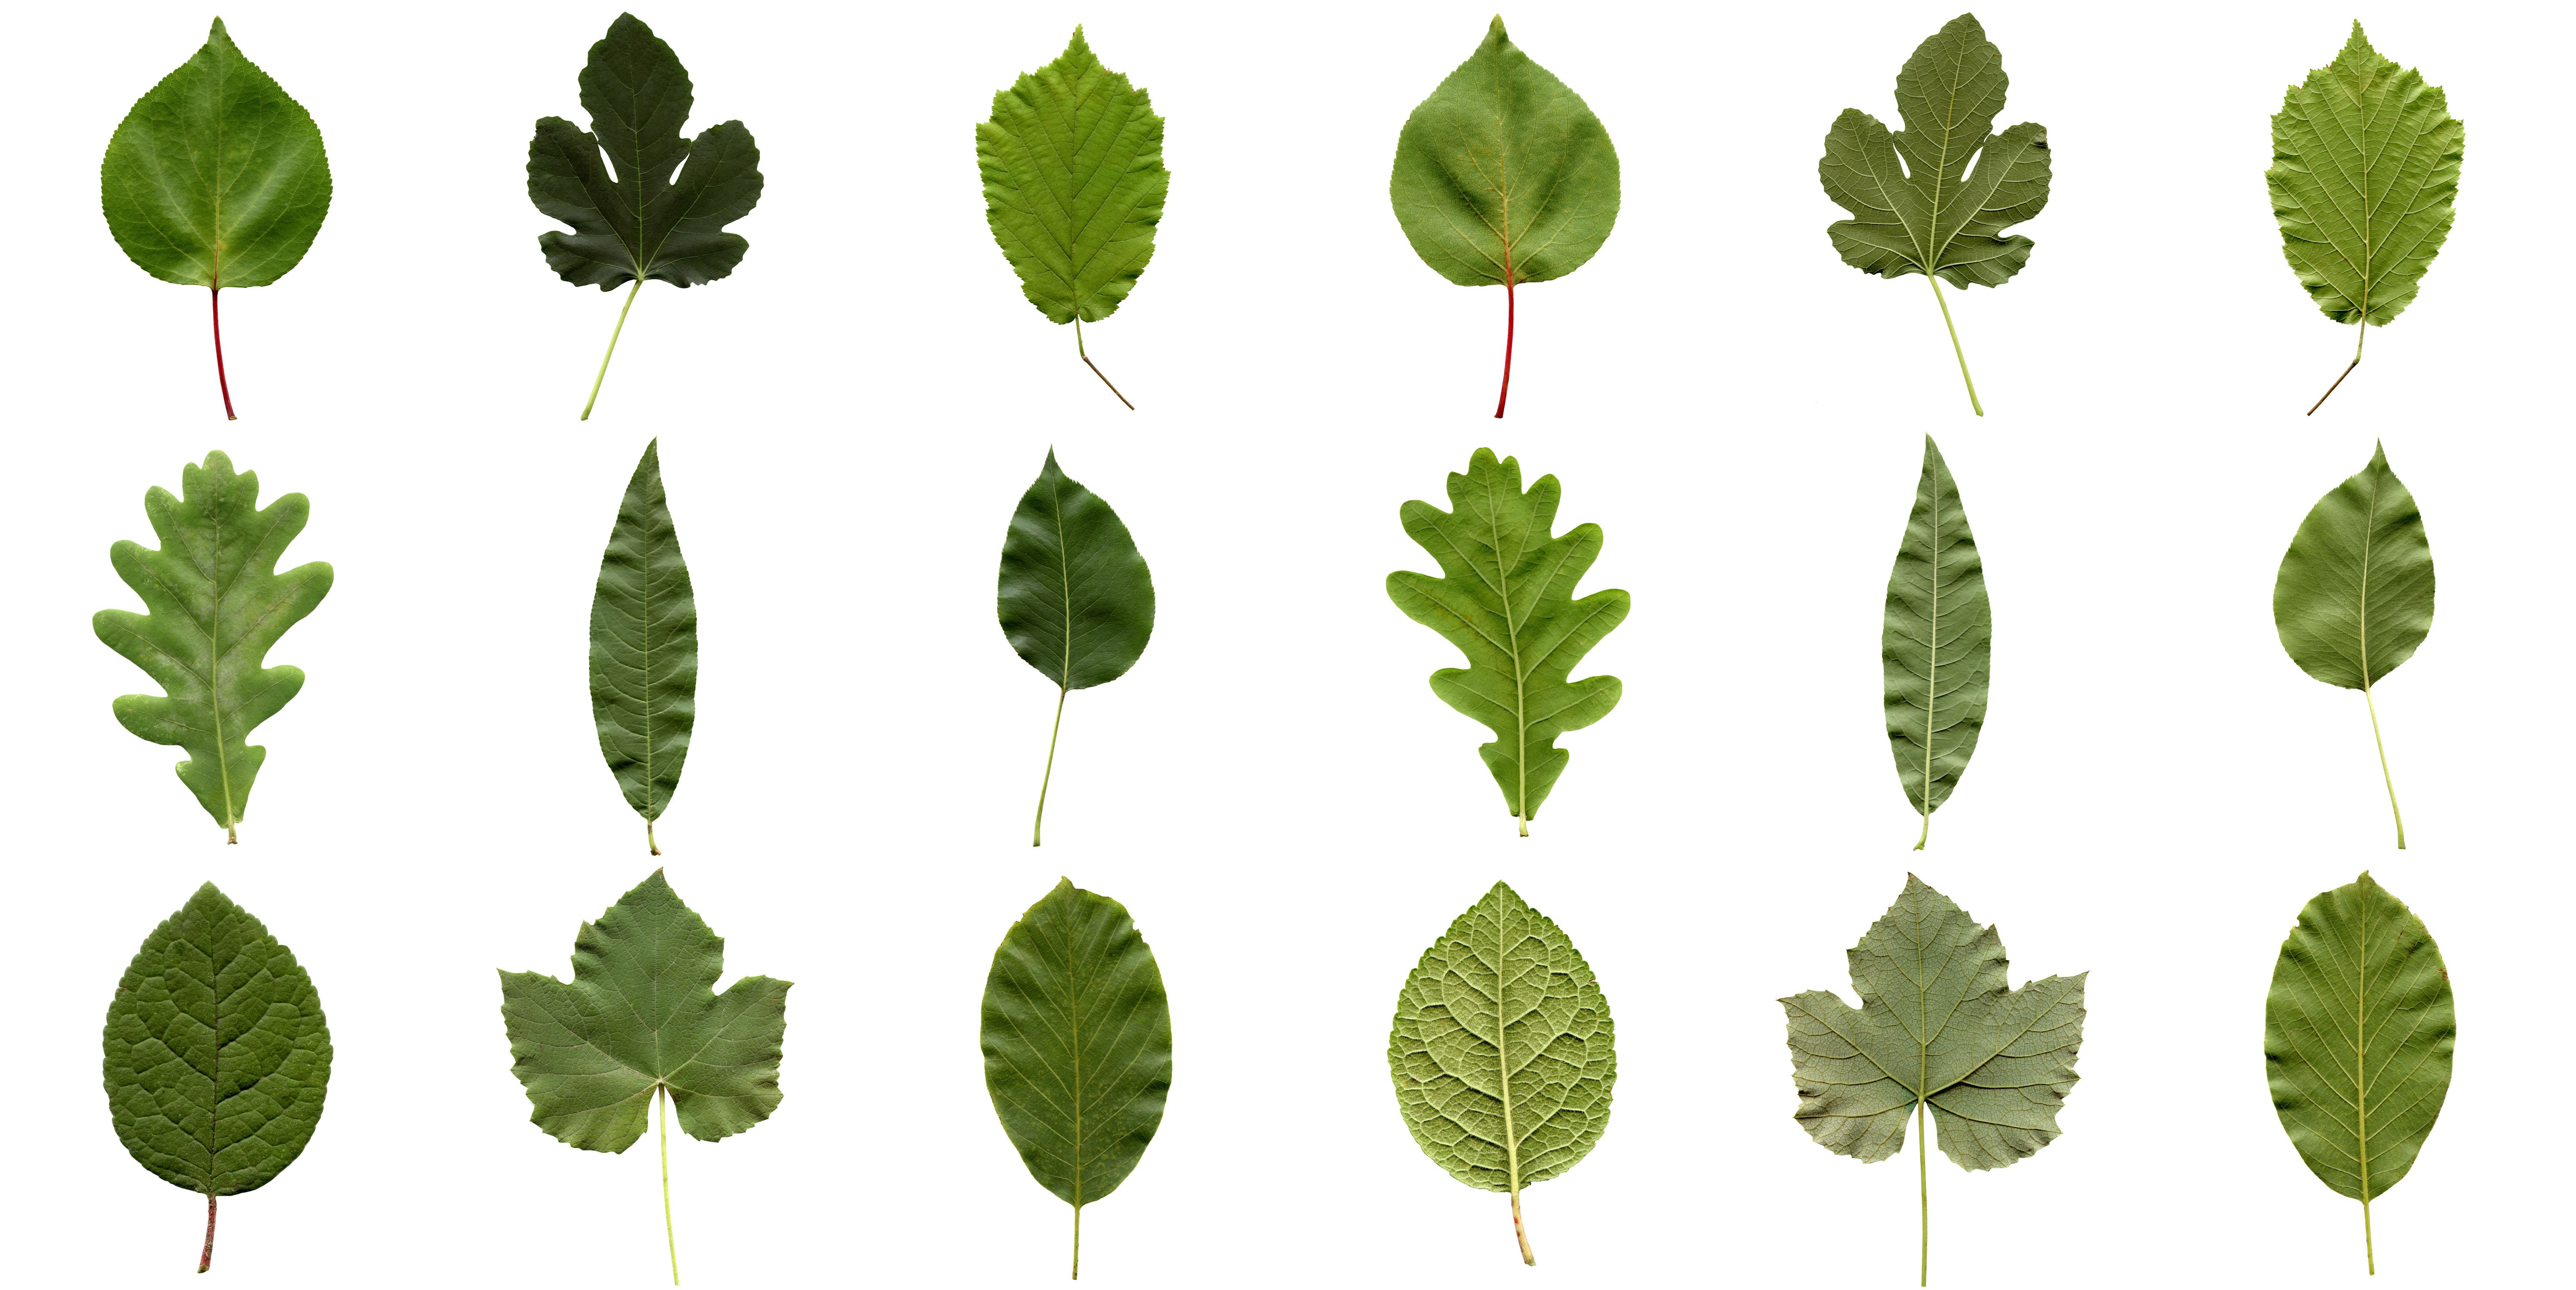 Why Do Leaves Have Such Different Shapes